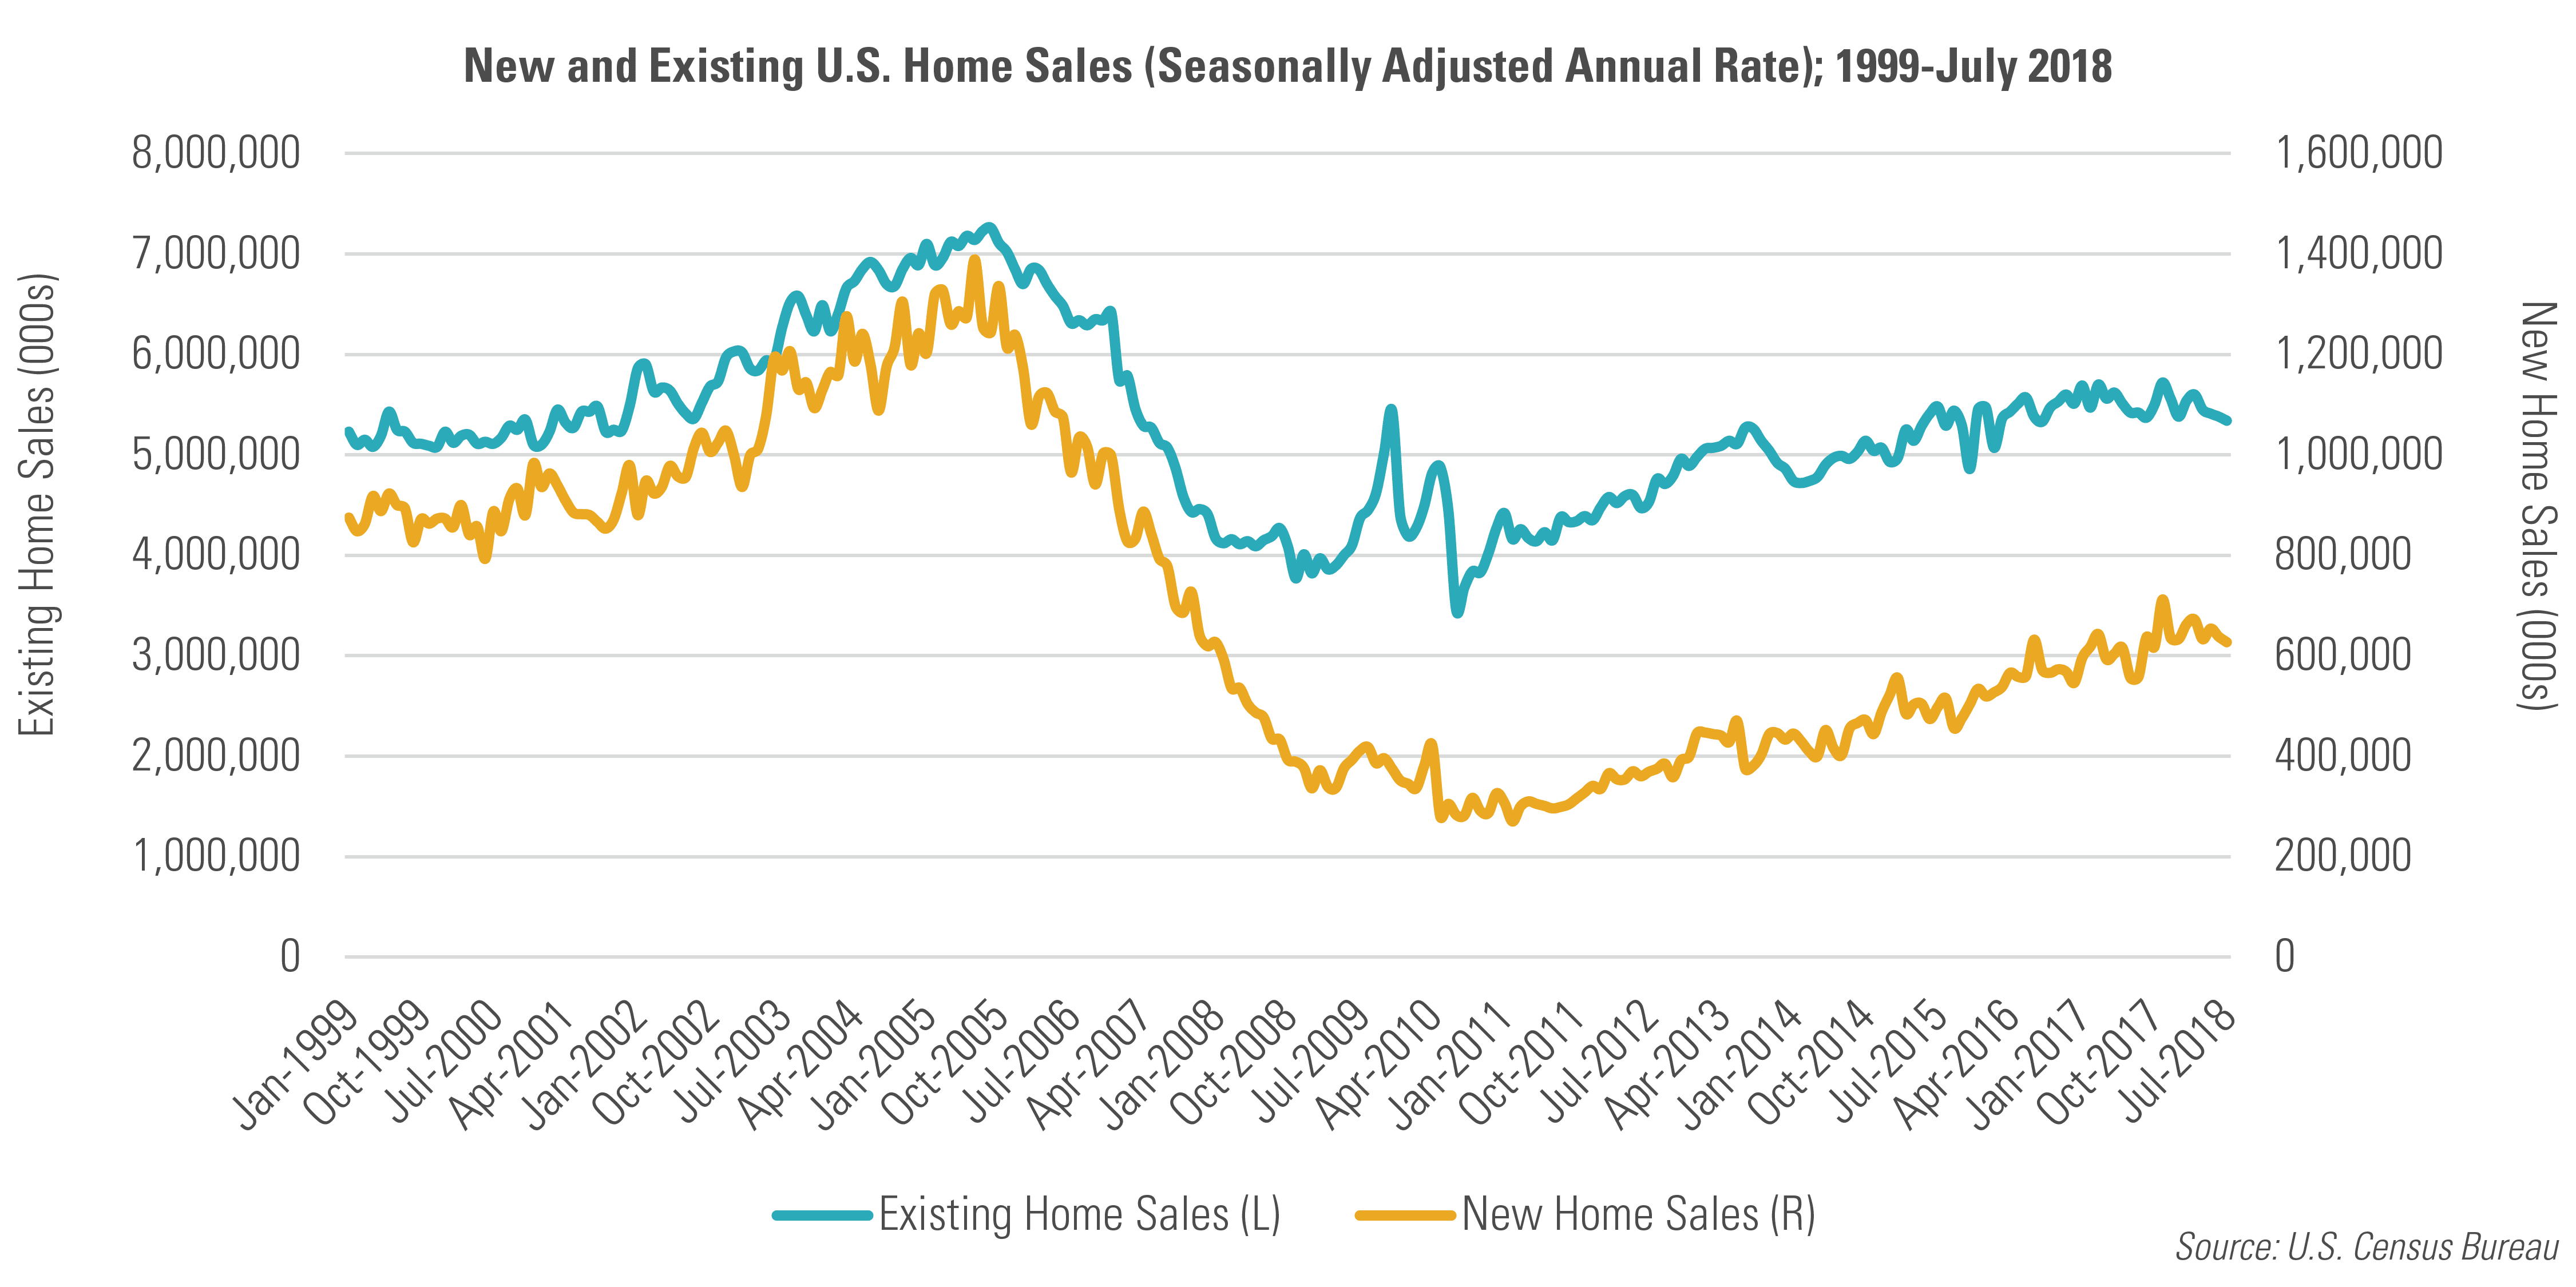 New and Existing U.S. Home Sales (Seasonally Adjusted Annual Rate); 1999-July 2016